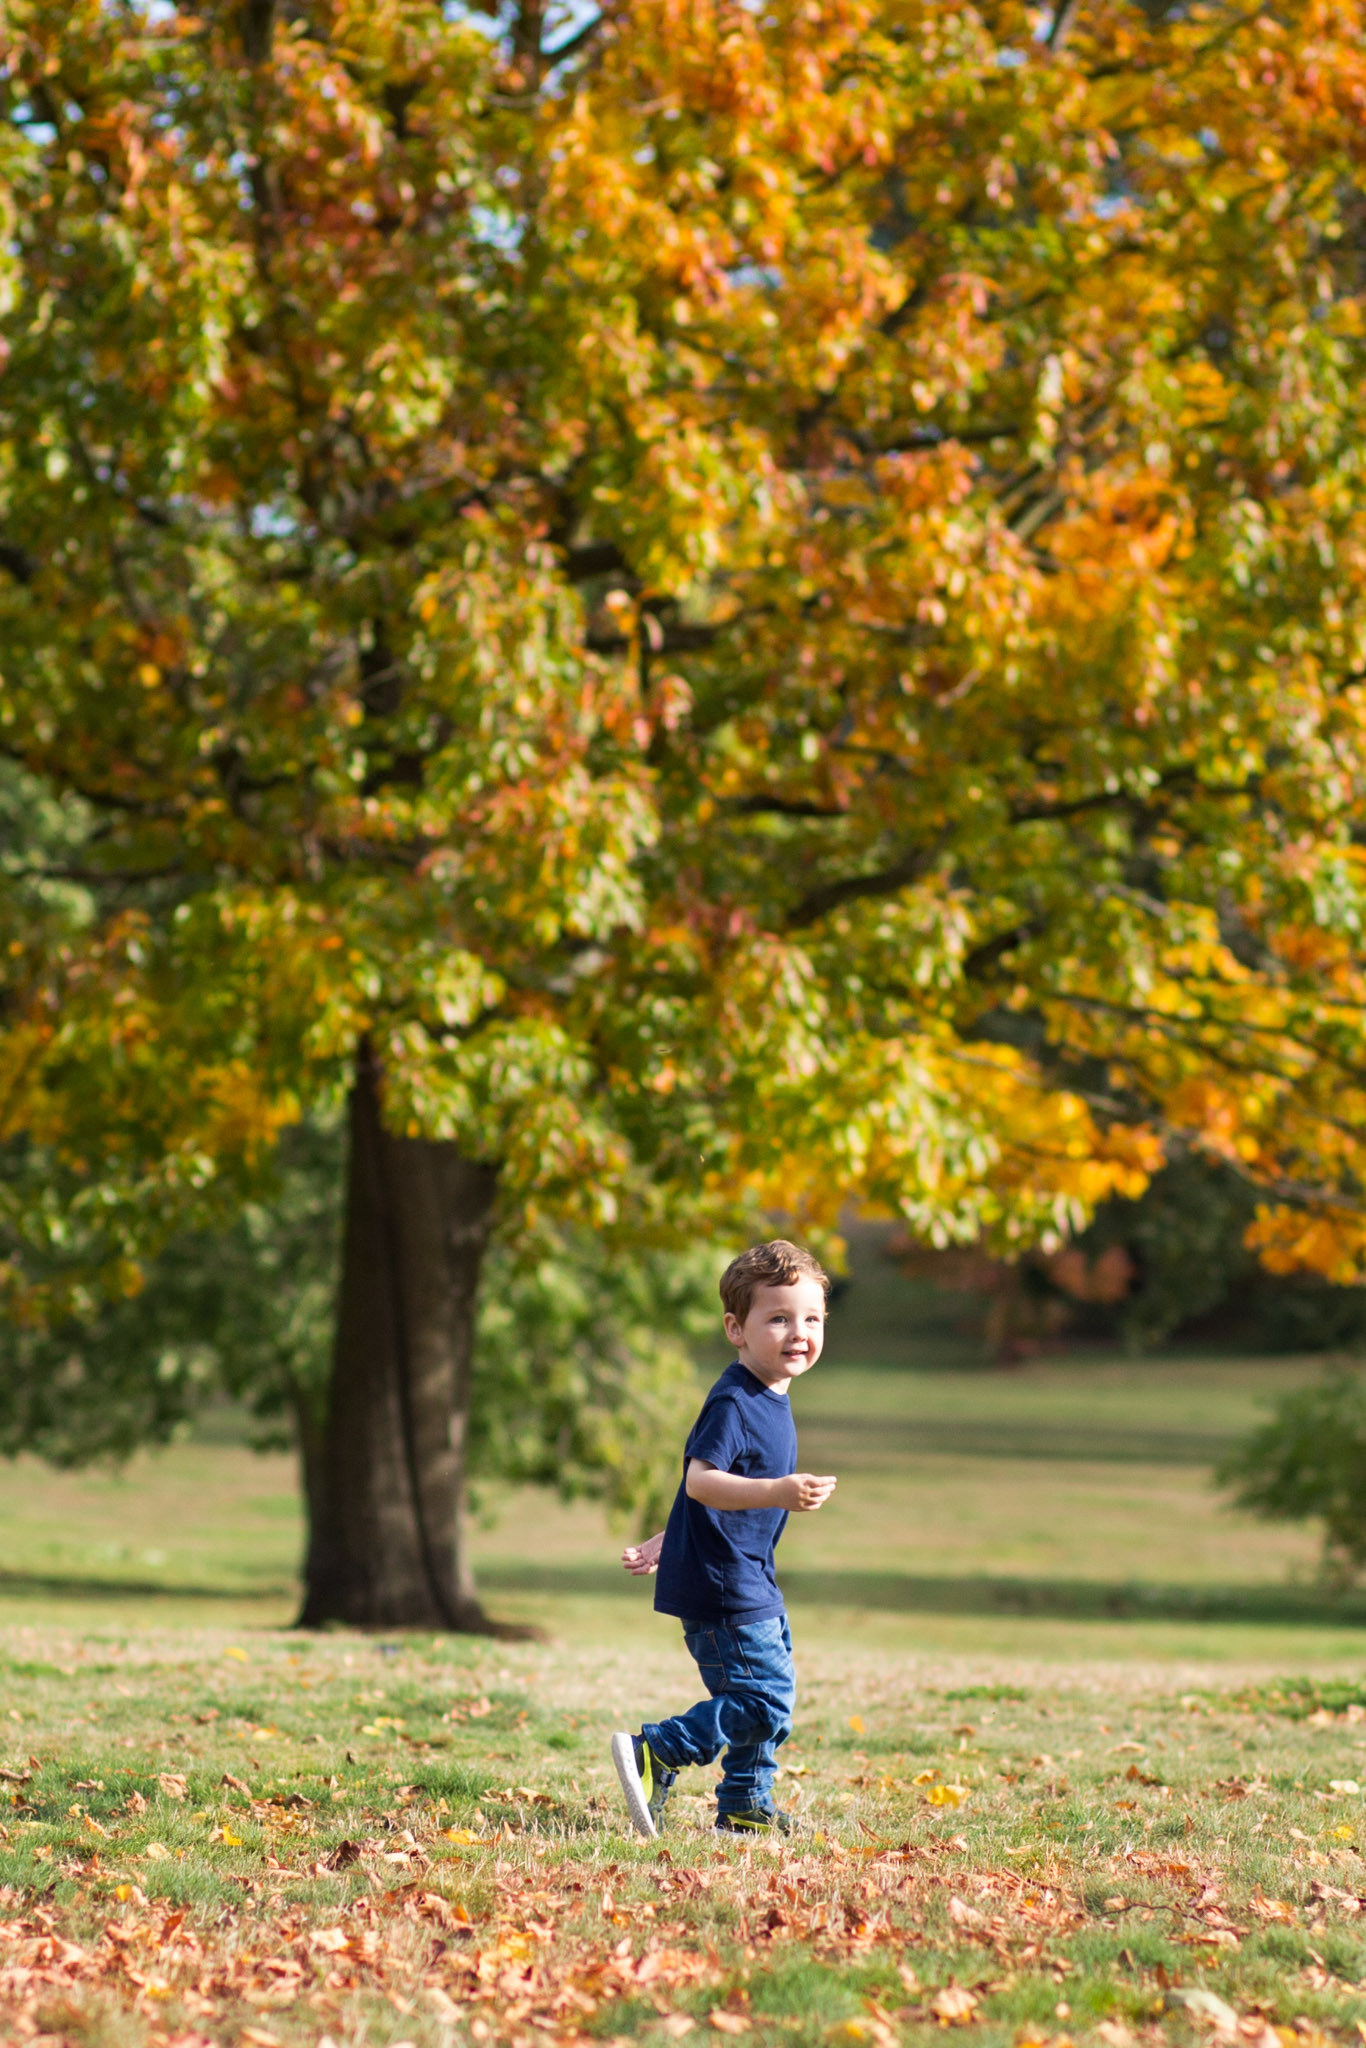 Autumn leaves in Beckenham Place Park, natural shot of young boy